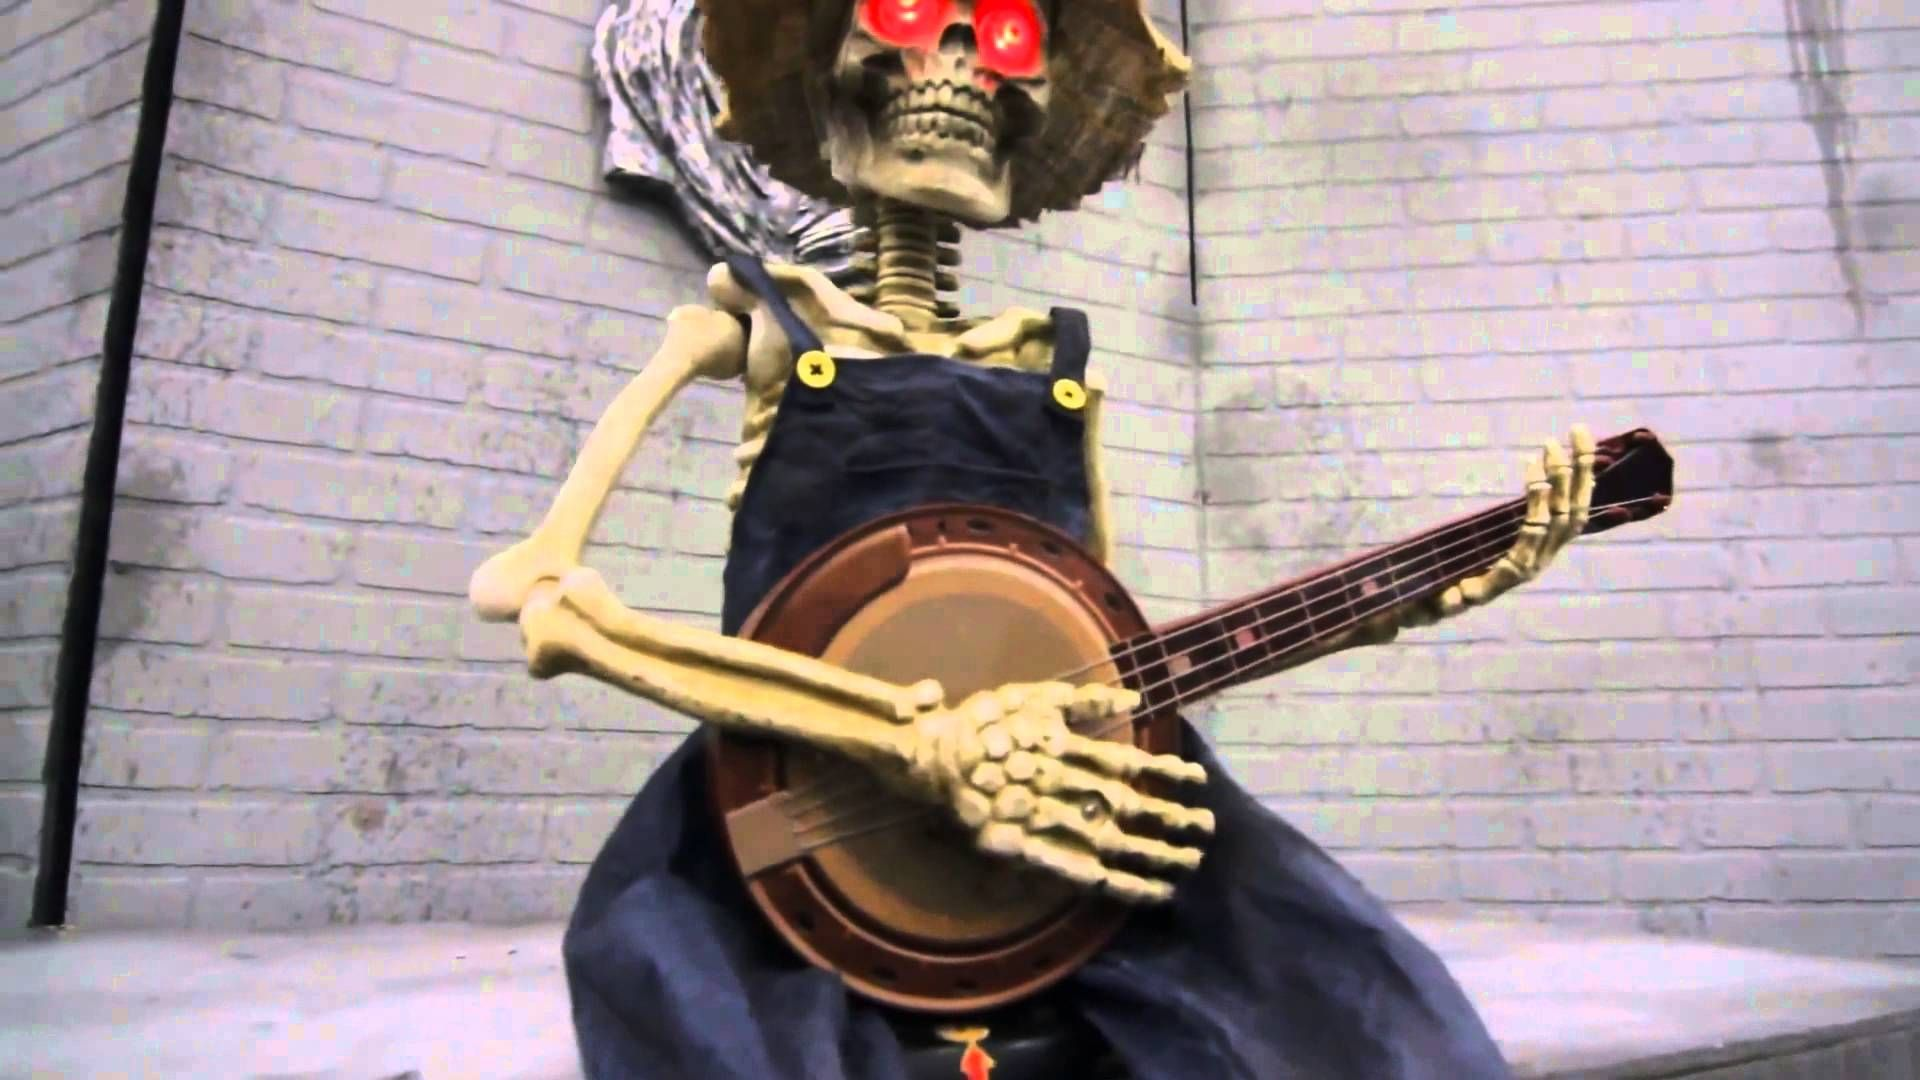 Halloween Prop SKELETON PLAYING BANJO Animated Haunted House - Halloween House Decoration